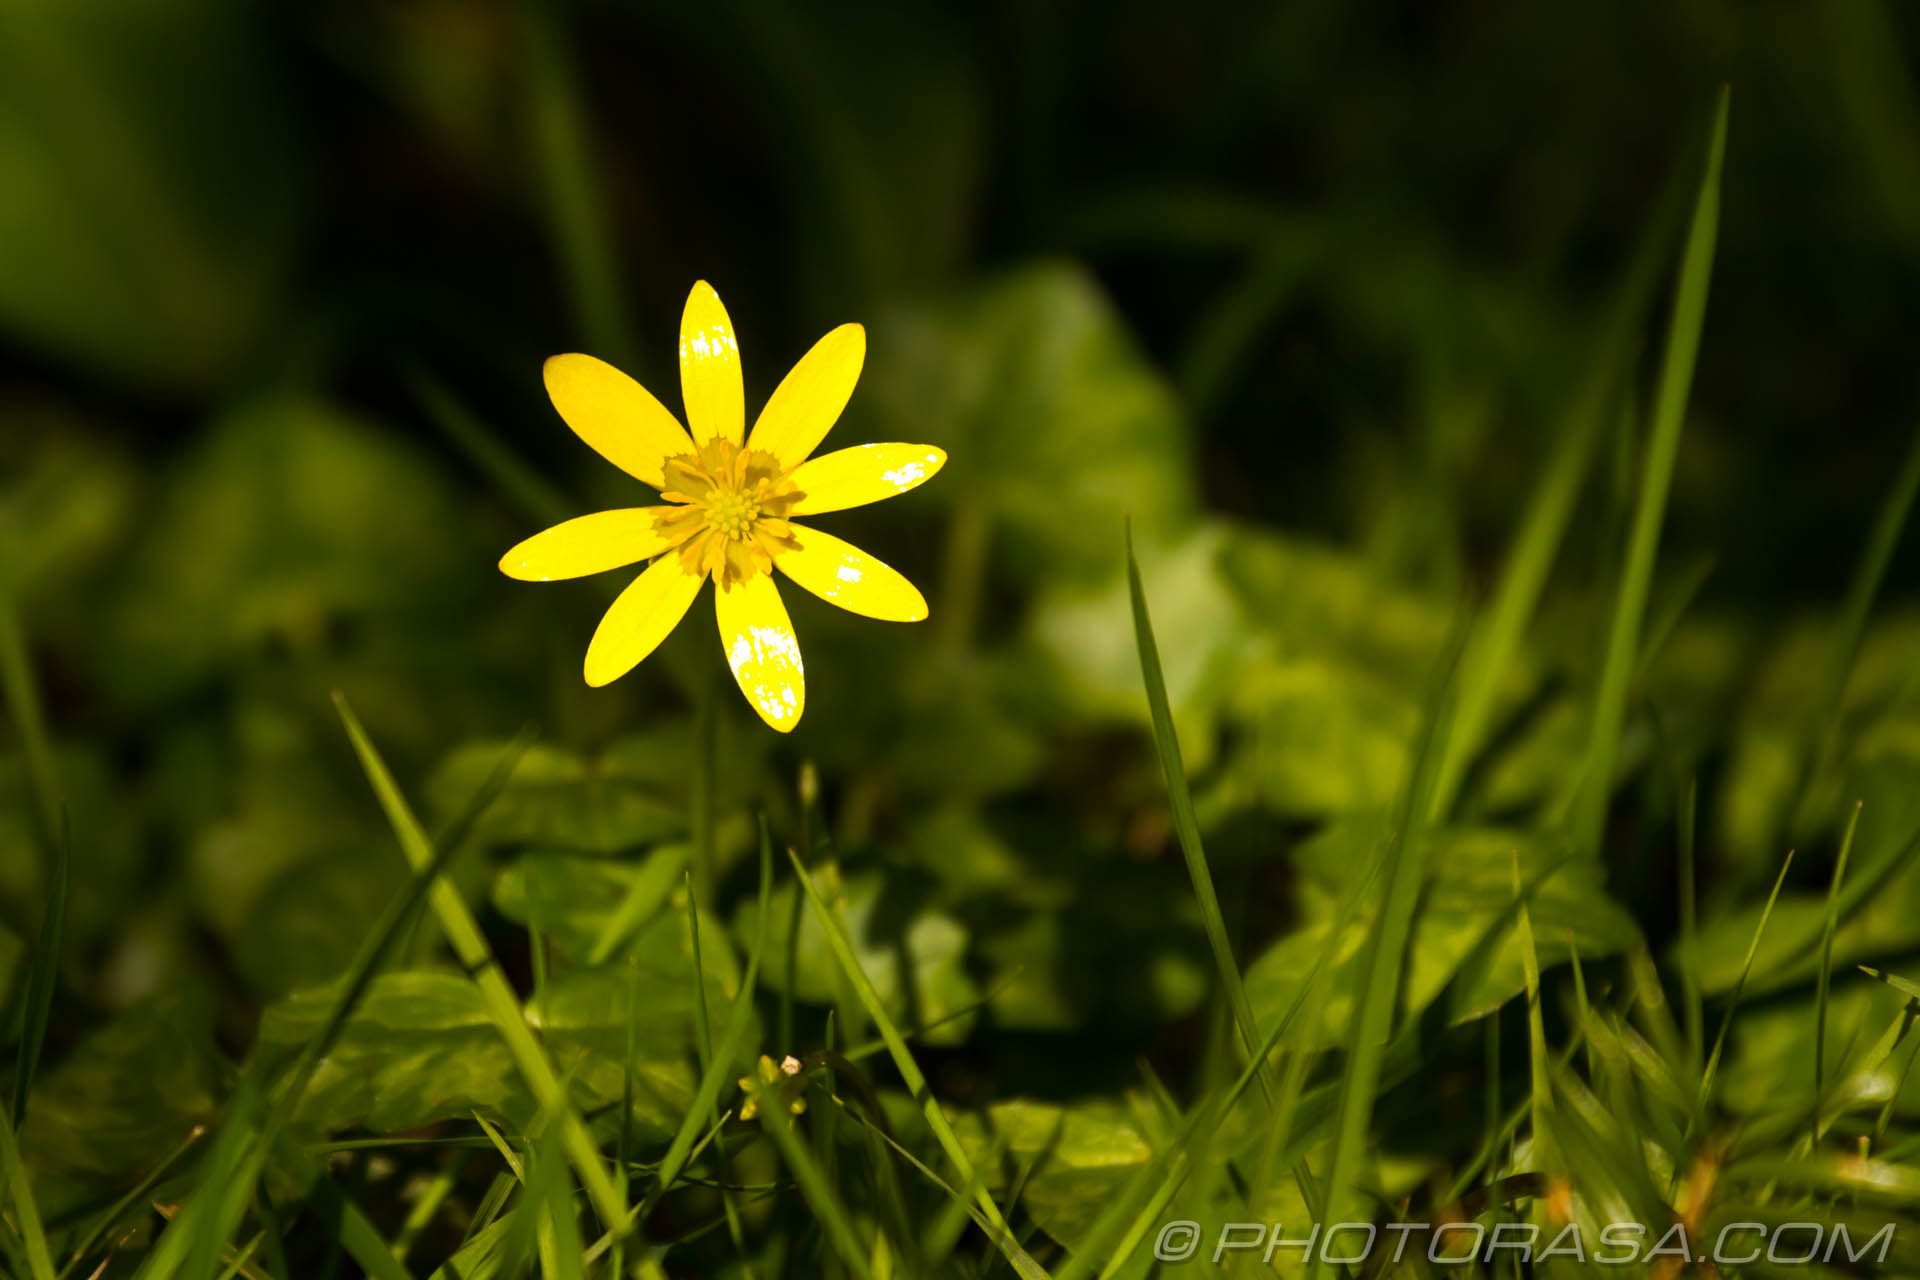 http://photorasa.com/single-buttercup-in-the-grass/